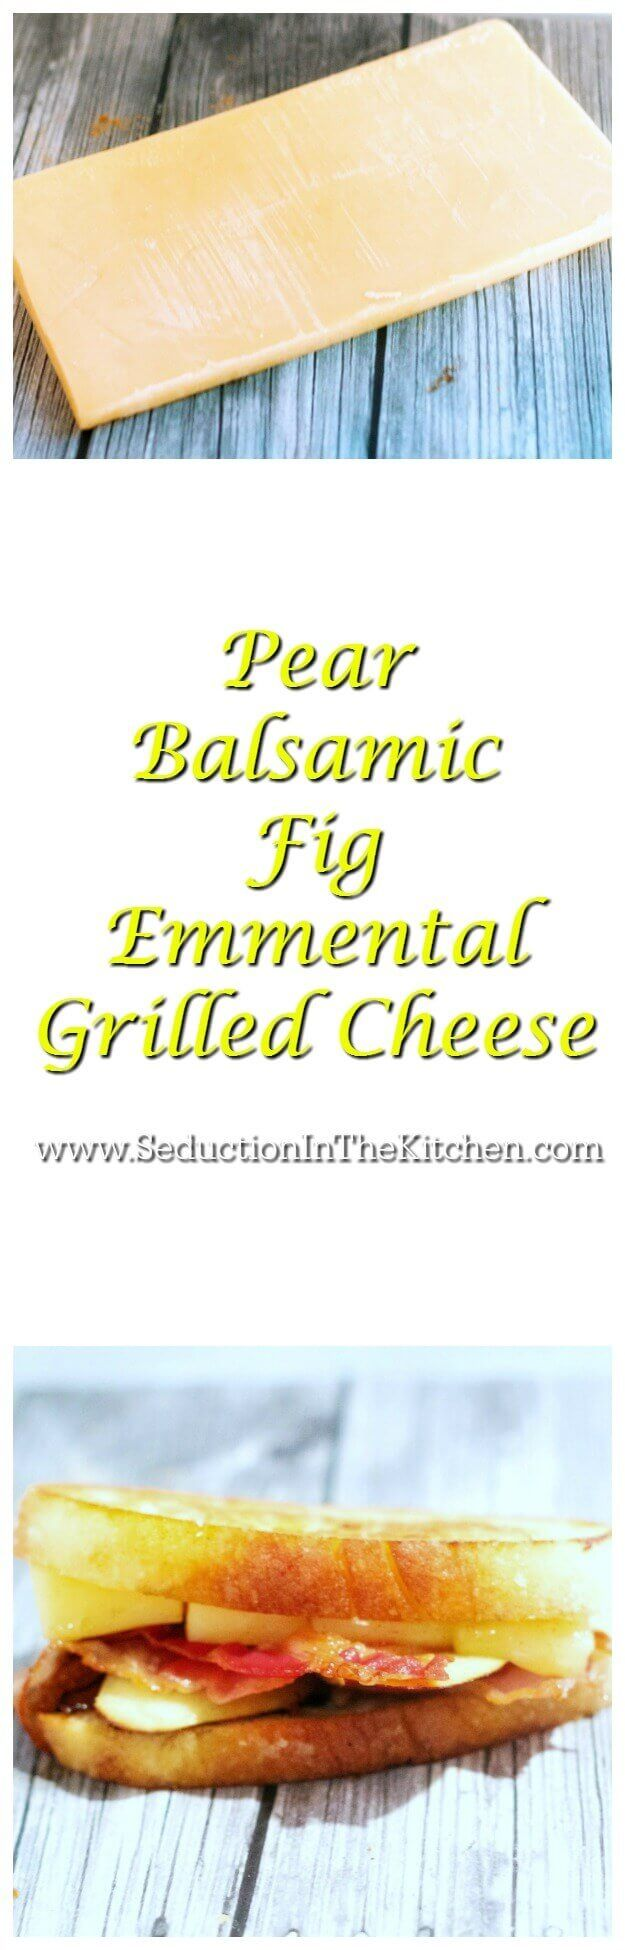 Pear Balsamic Fig Emmental Grilled Cheese was created for #NationalGrilledCheeseDay. #Emmental is a smooth and creamy cheese that goes wonderfully with the balsamic fig and pear. #makeitmagnifique  via @SeductionRecipe